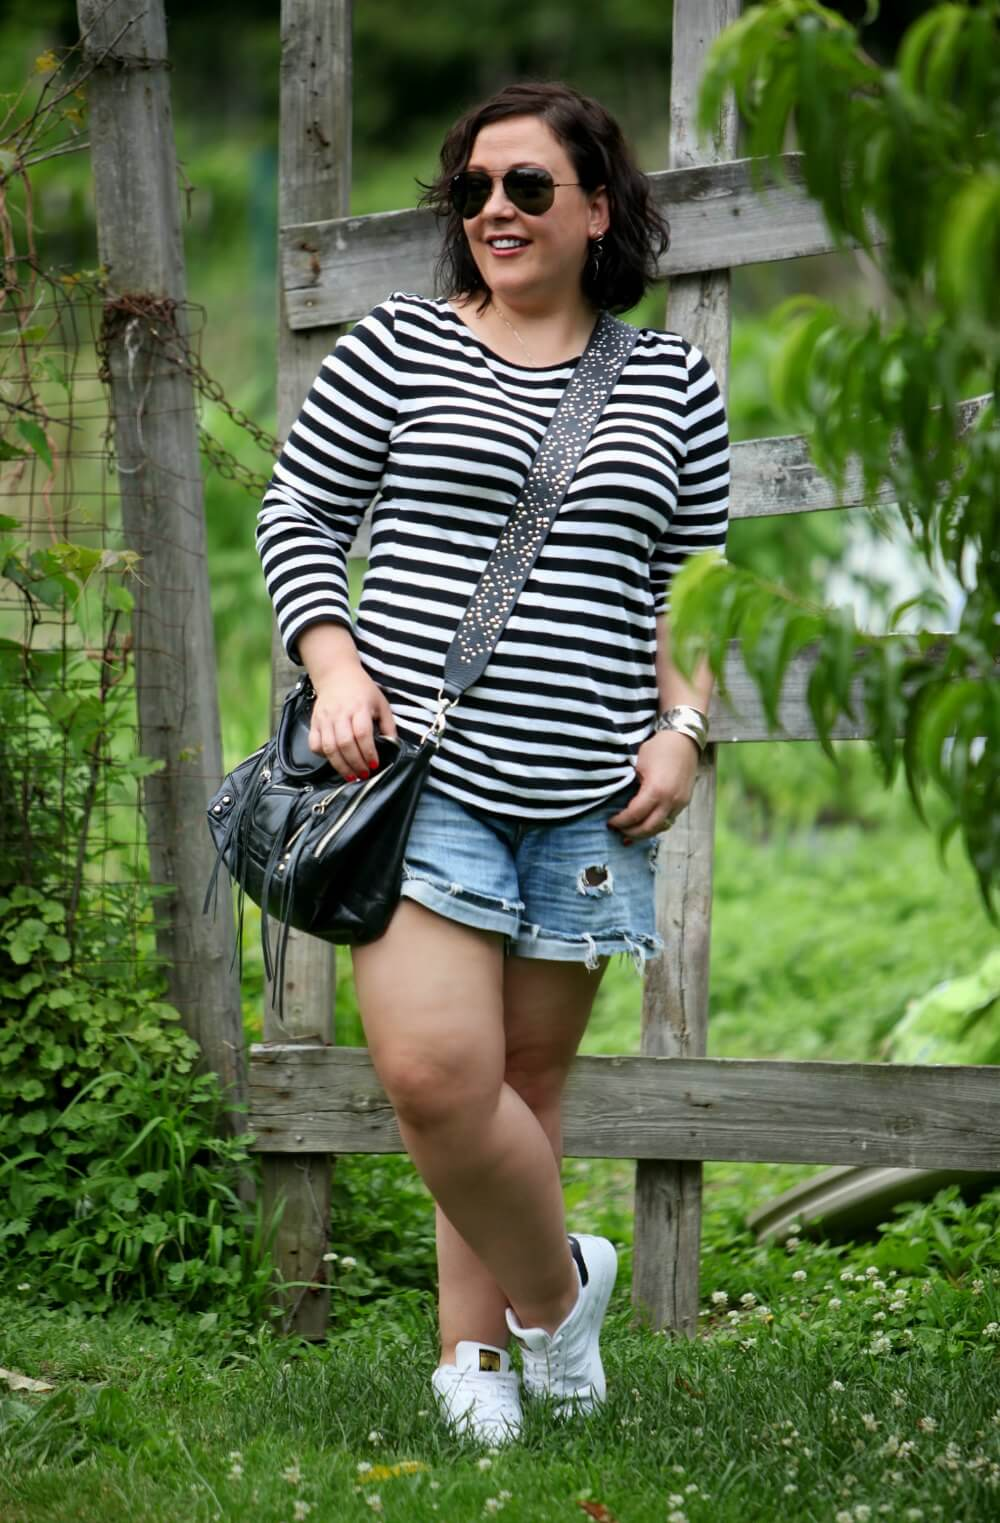 over 40 fashion blog wardrobe oxygen in a casual weekend look featuring Rebecca Minkoff and J Crew